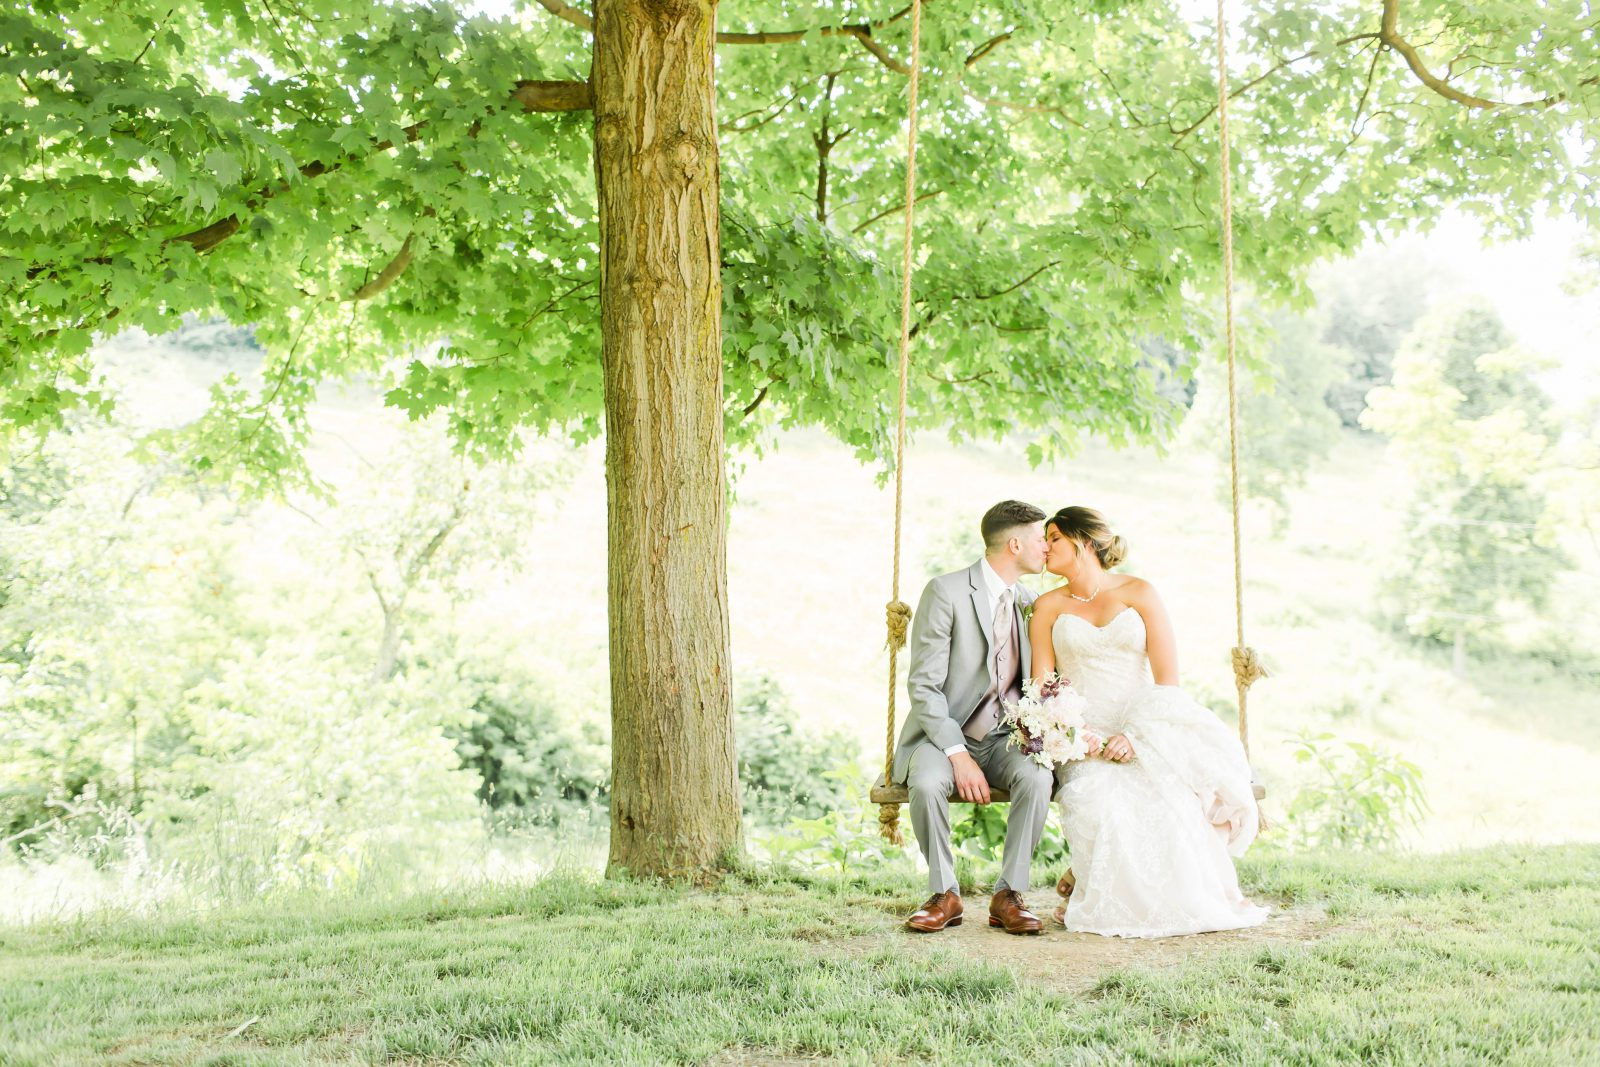 rivercrest-farm-summer-wedding-loren-jackson-photography-42